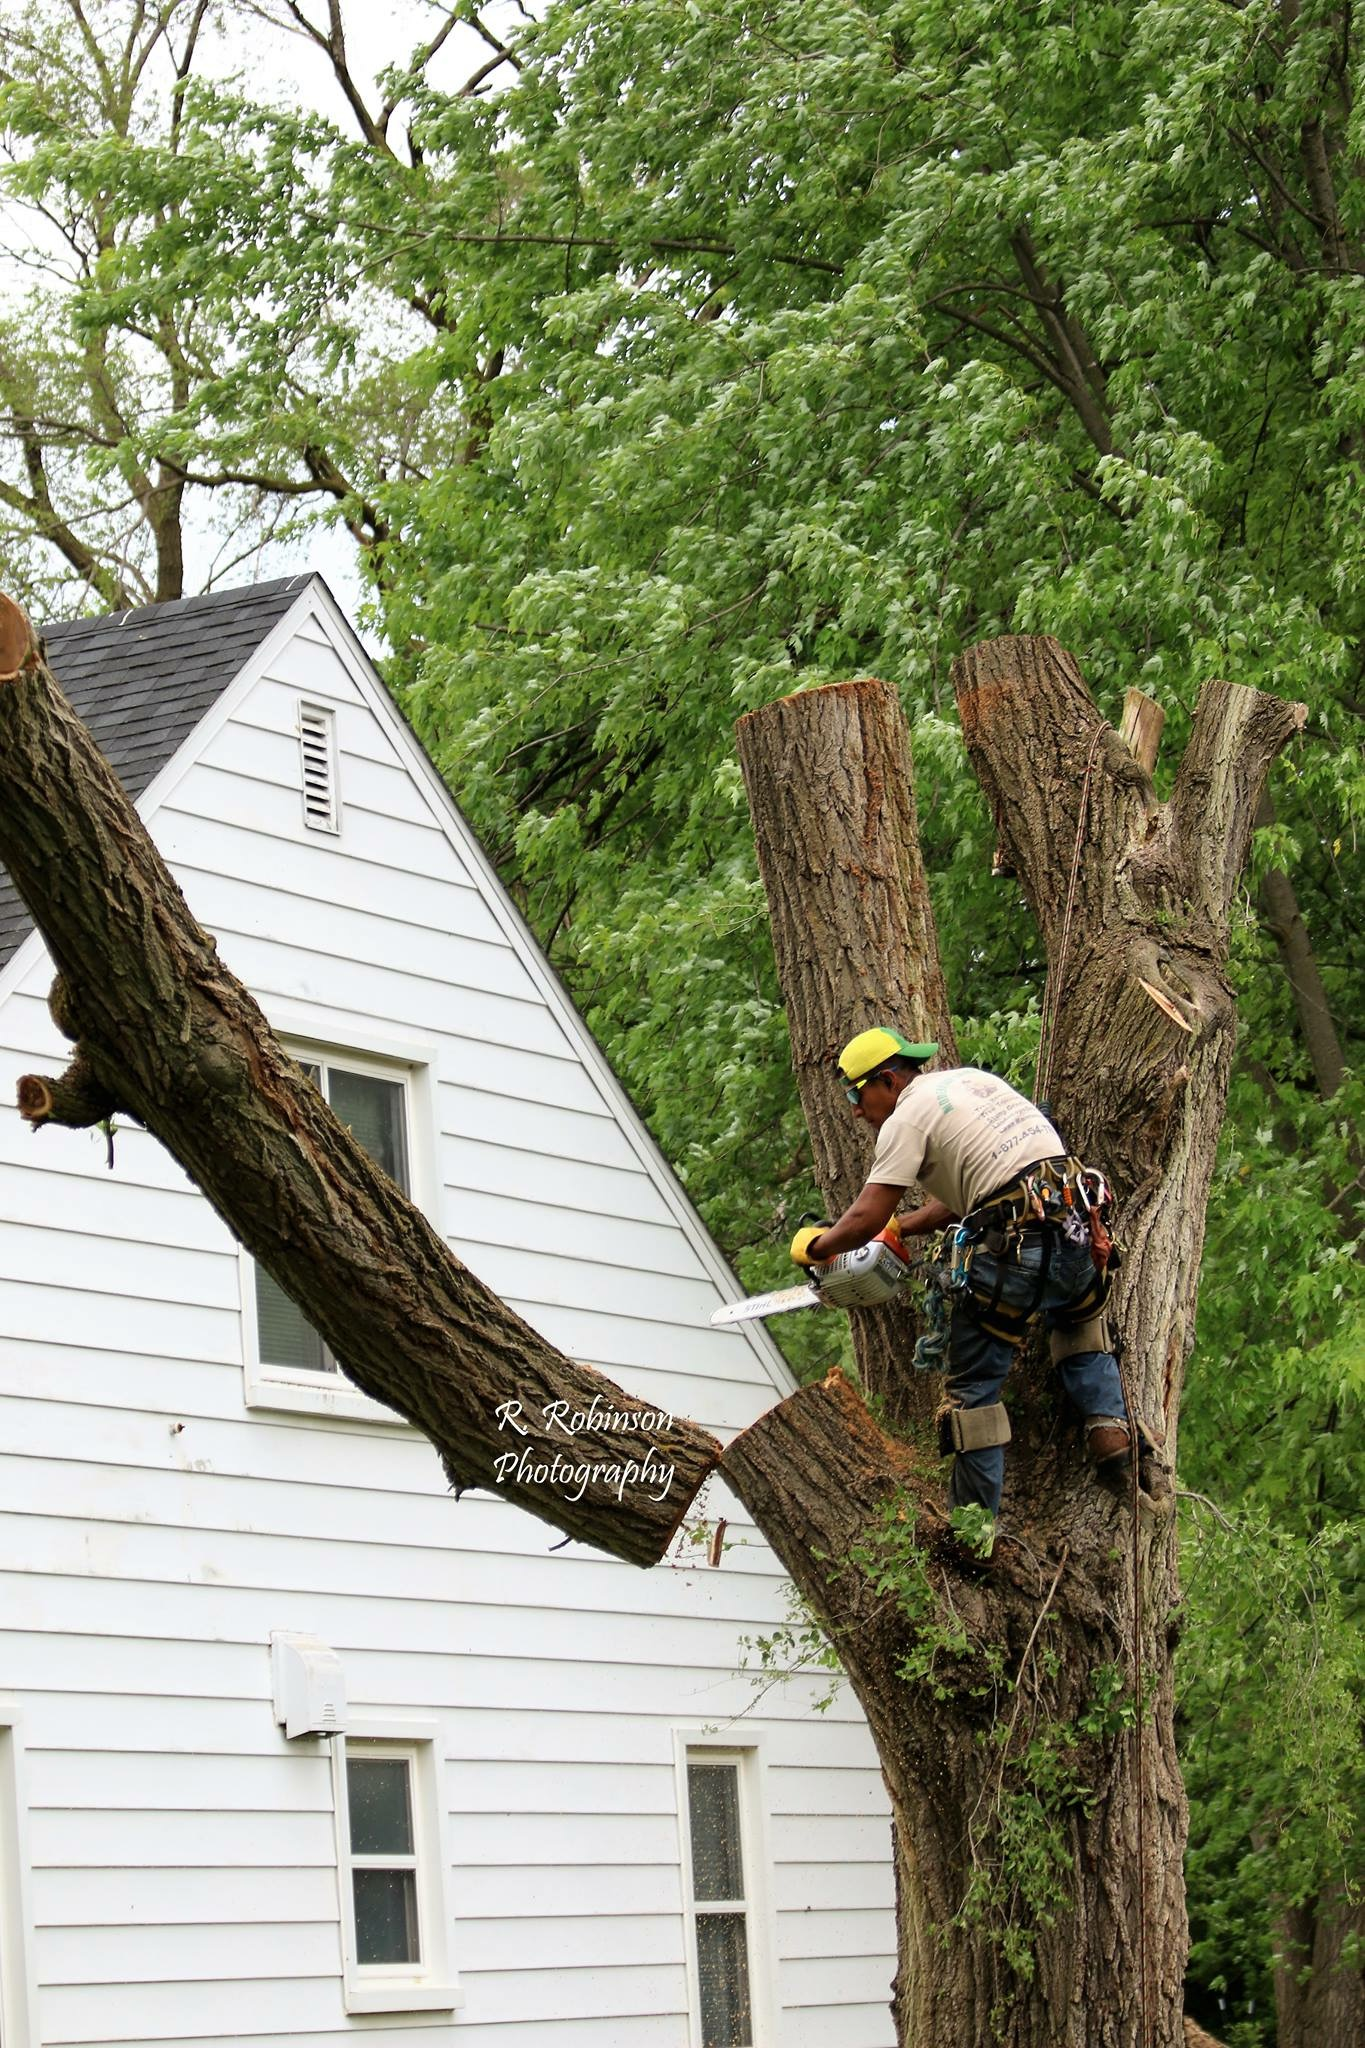 Need to cut down a tree close to your house? PPM Tree Service & Arbor Care offers precise tree felling by experienced, professional crews.